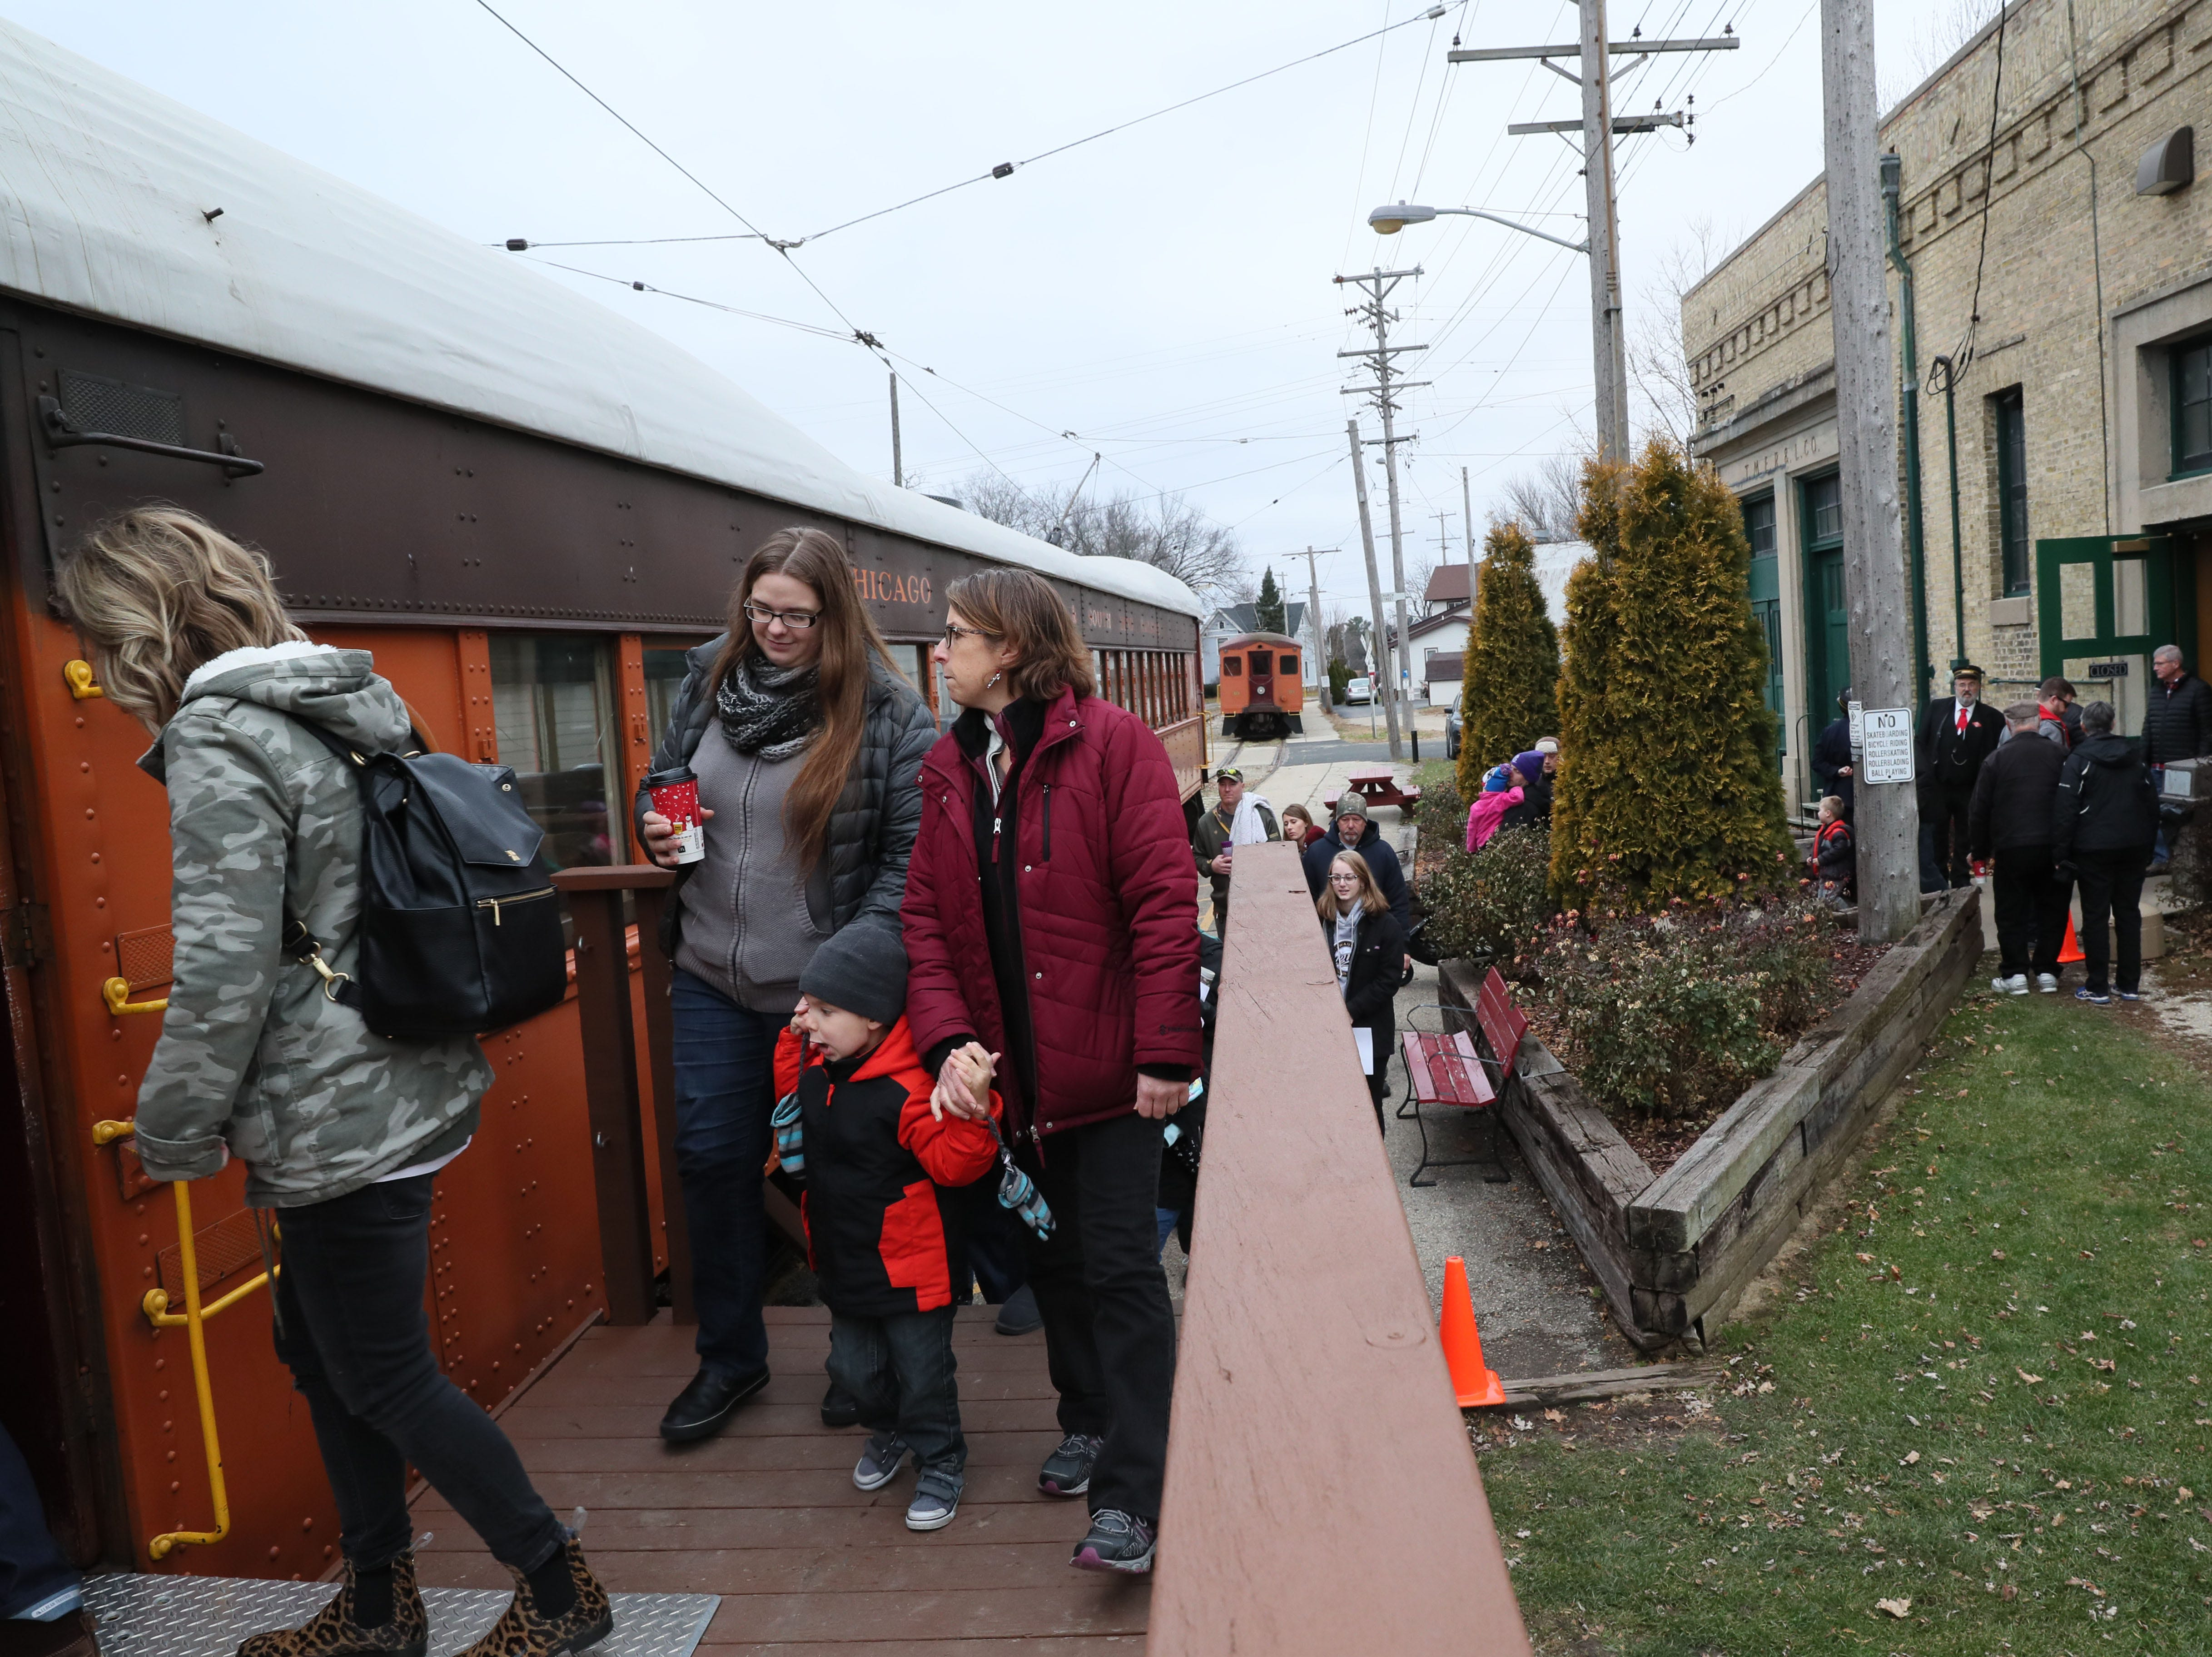 Passengers board the train at the depot in East Troy.